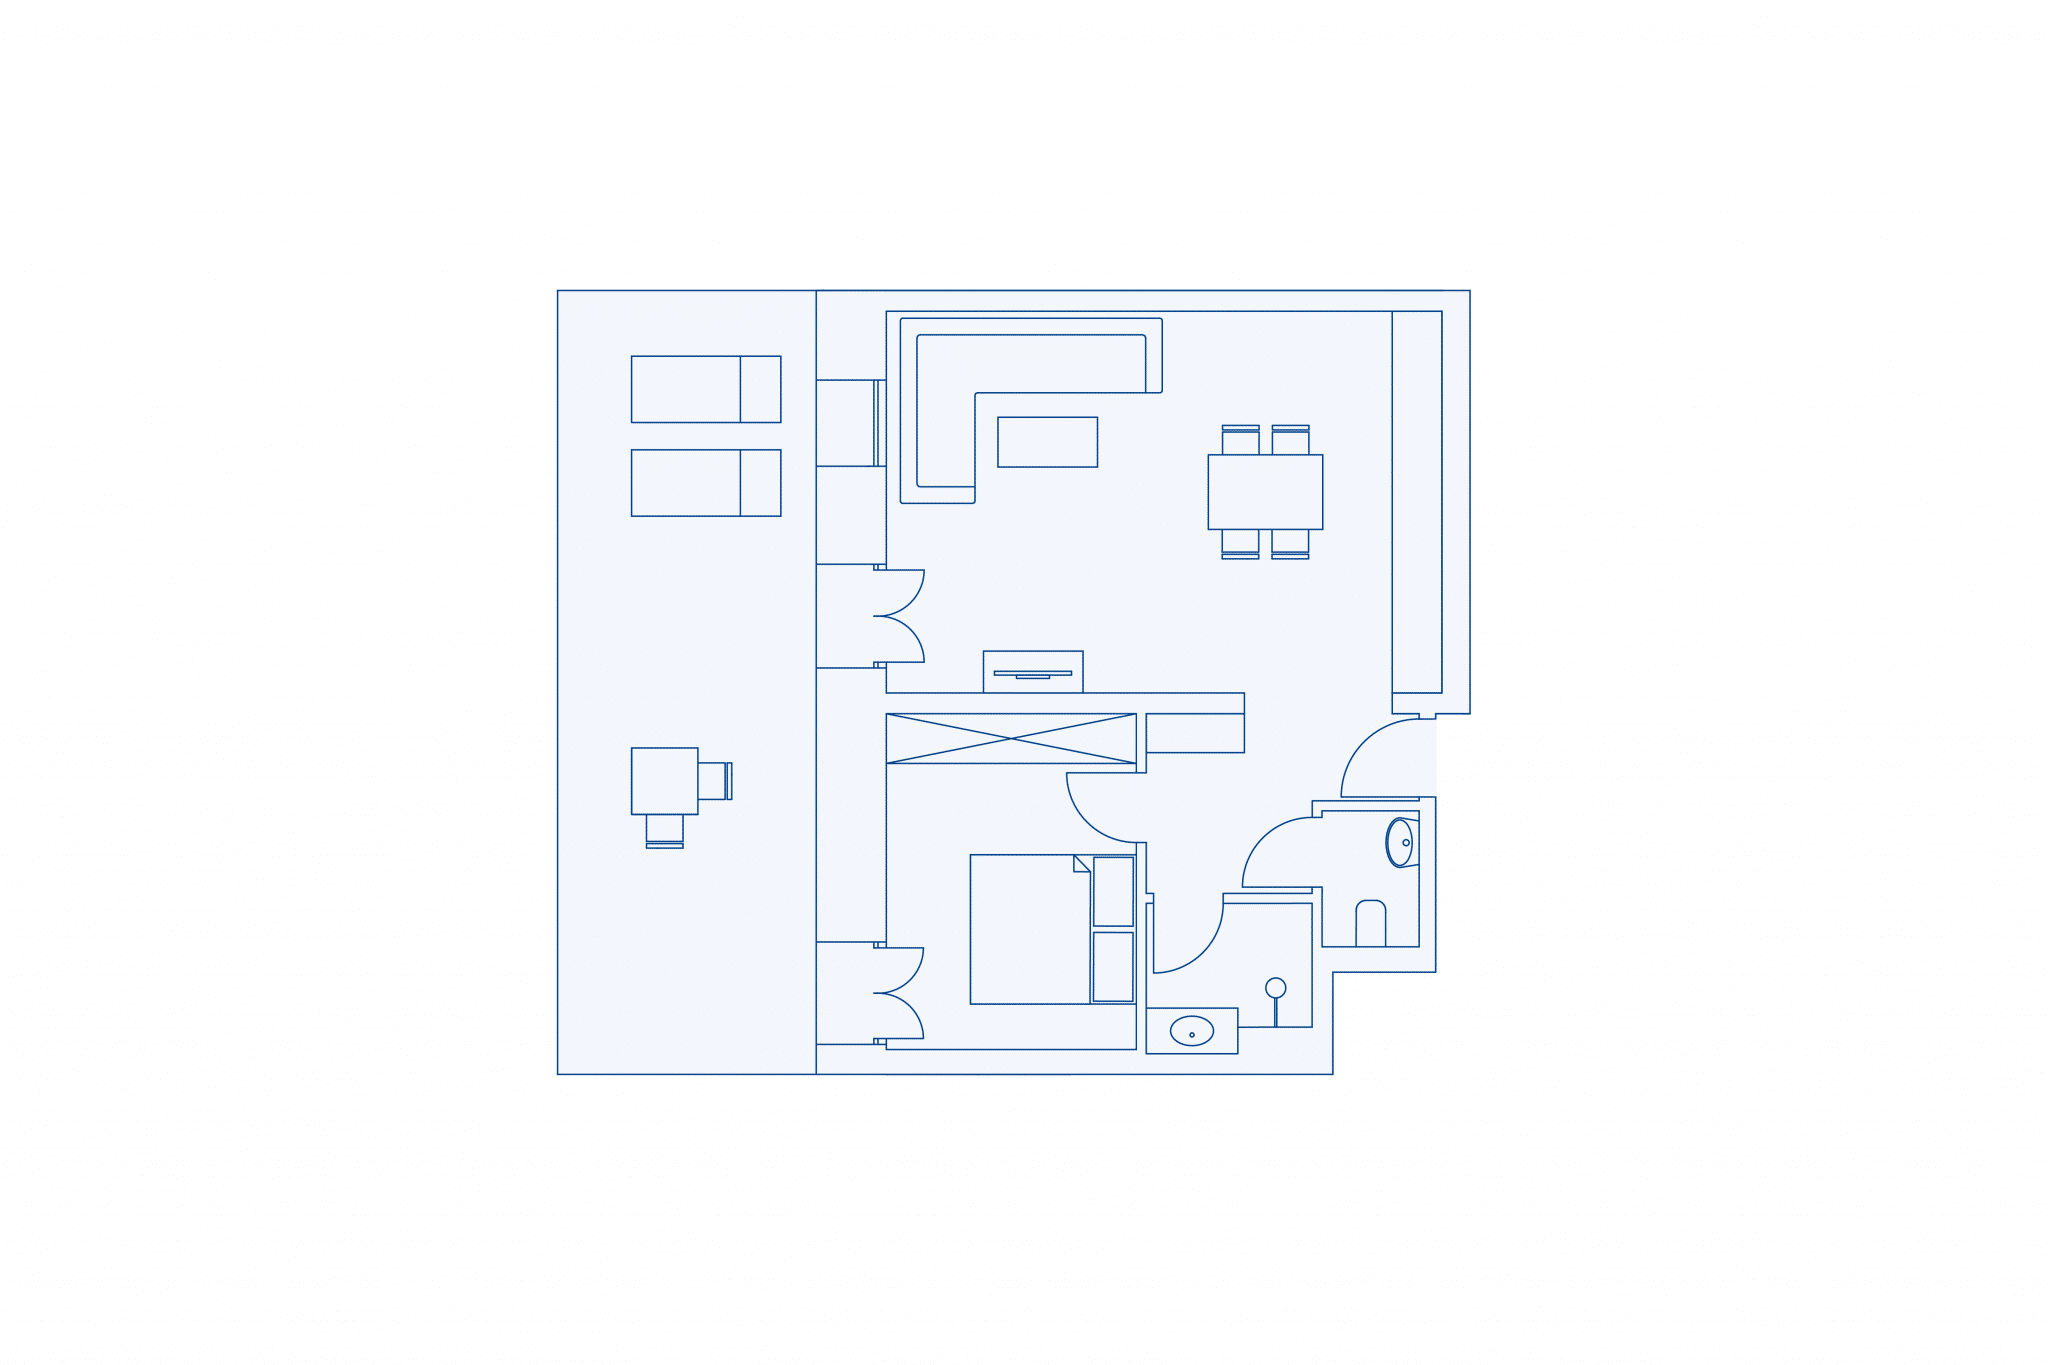 Room layout park residence 120 at VIVAMAYR Altaussee